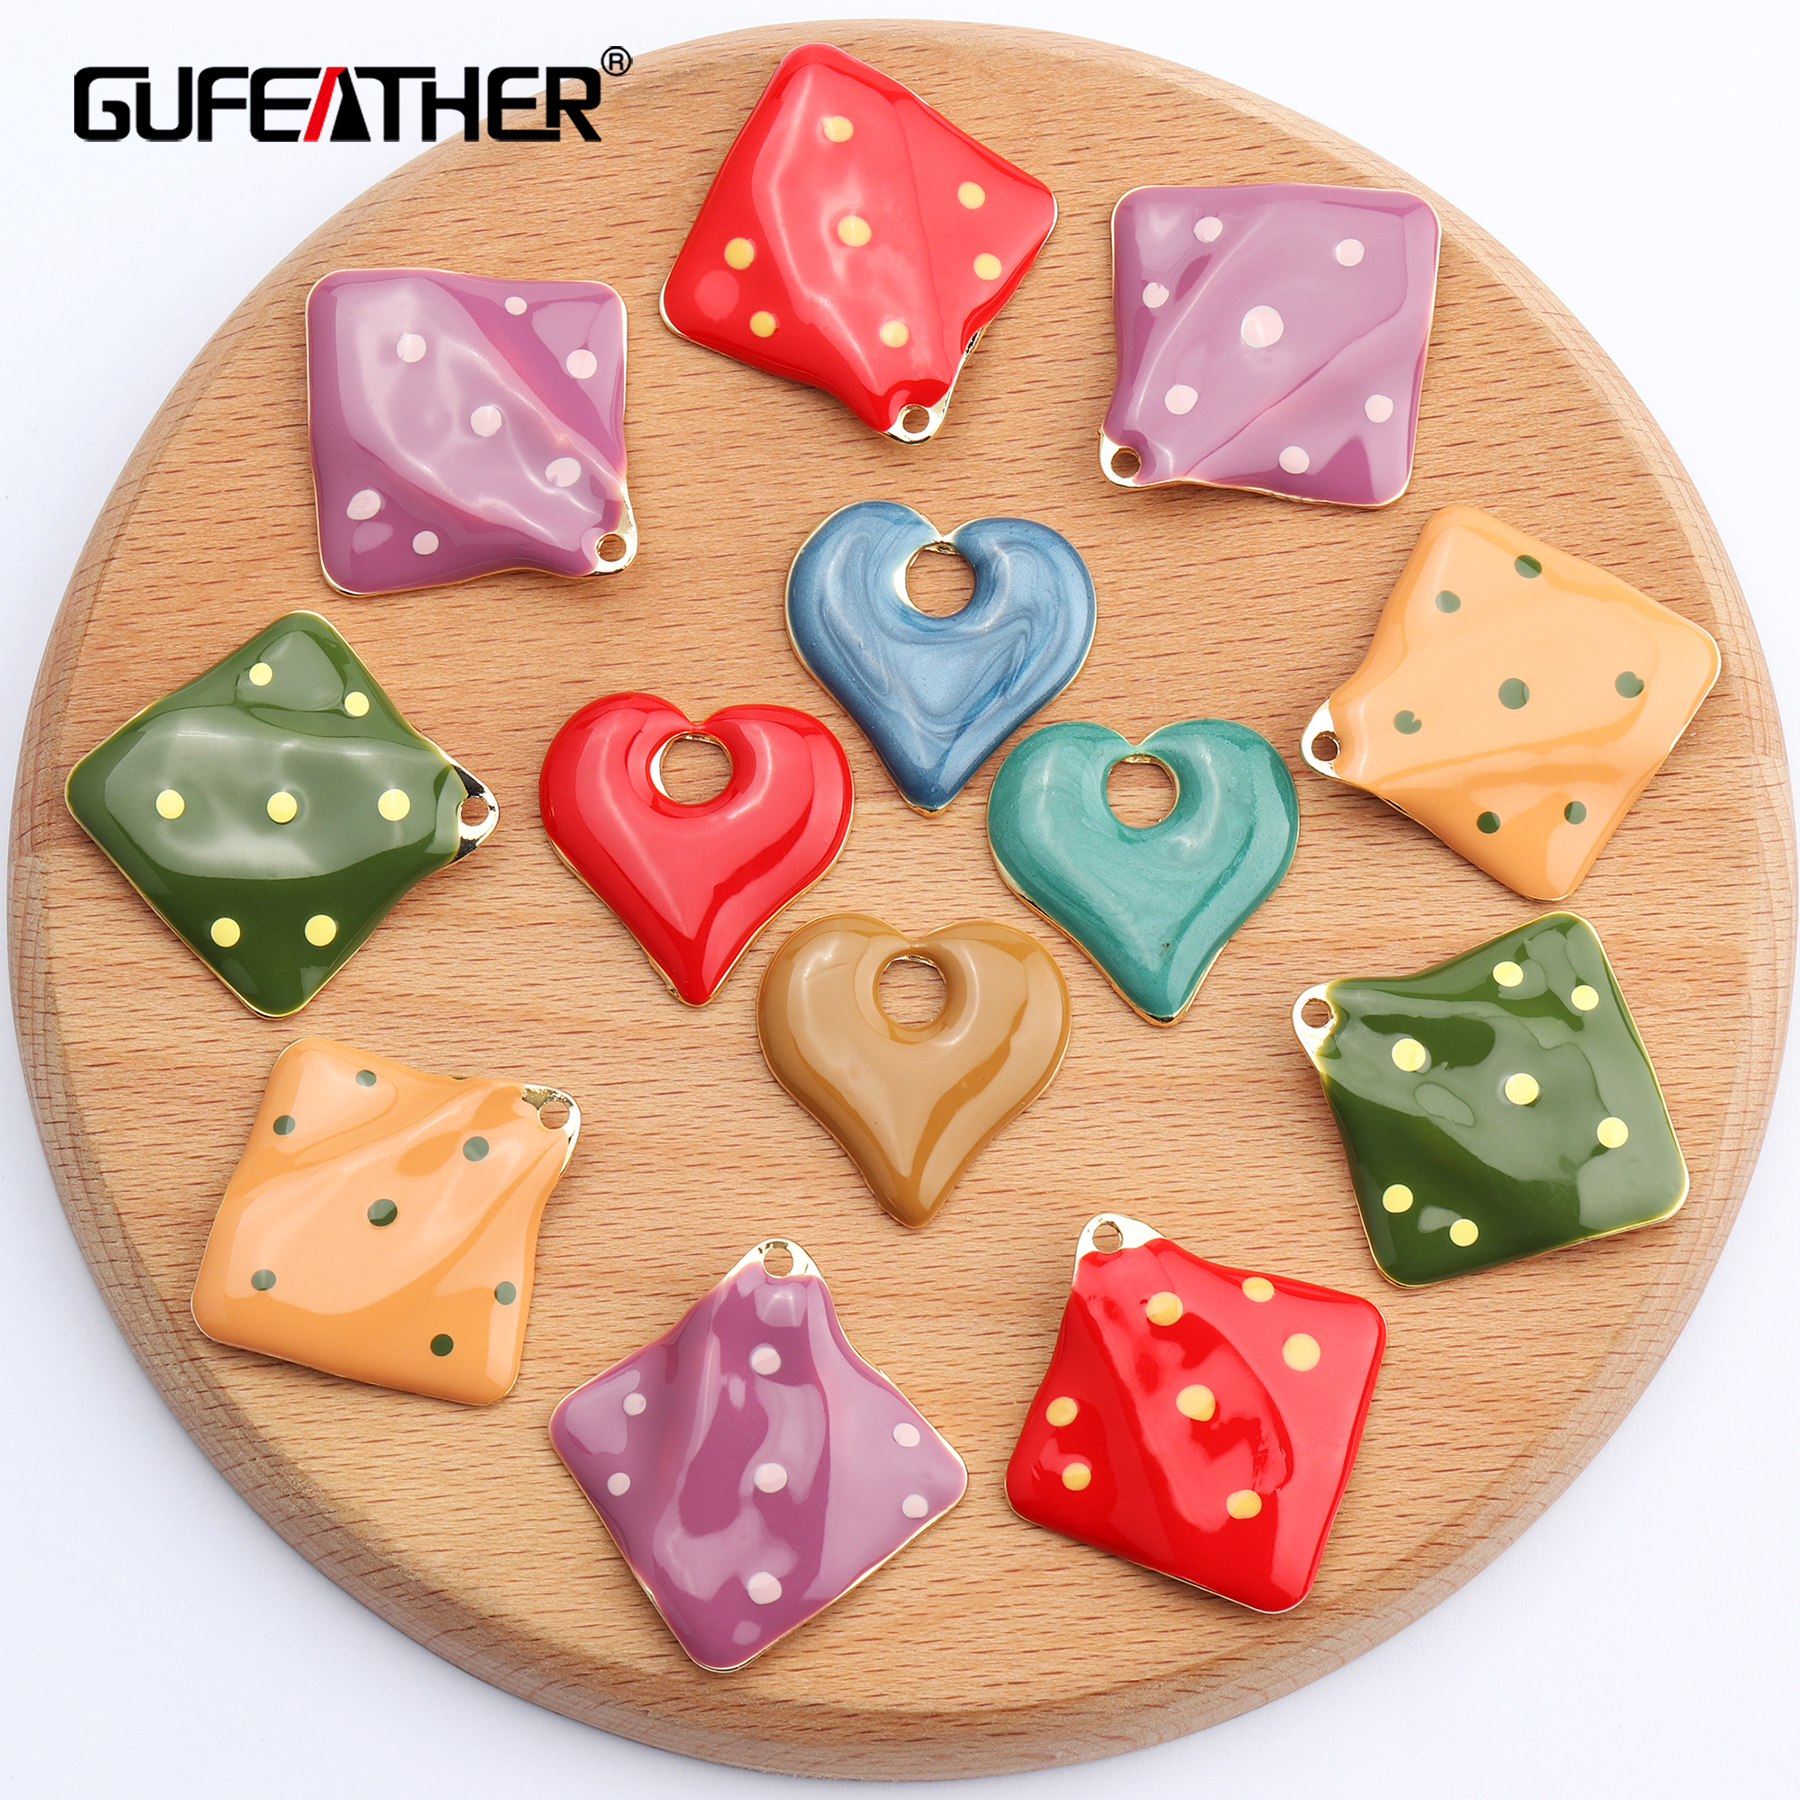 GUFEATHER M534,jewelry Accessories,hand Made,copper Metal,heart Shape,diy Accessories,jewelry Making,diy Earrings,10pcs/lot